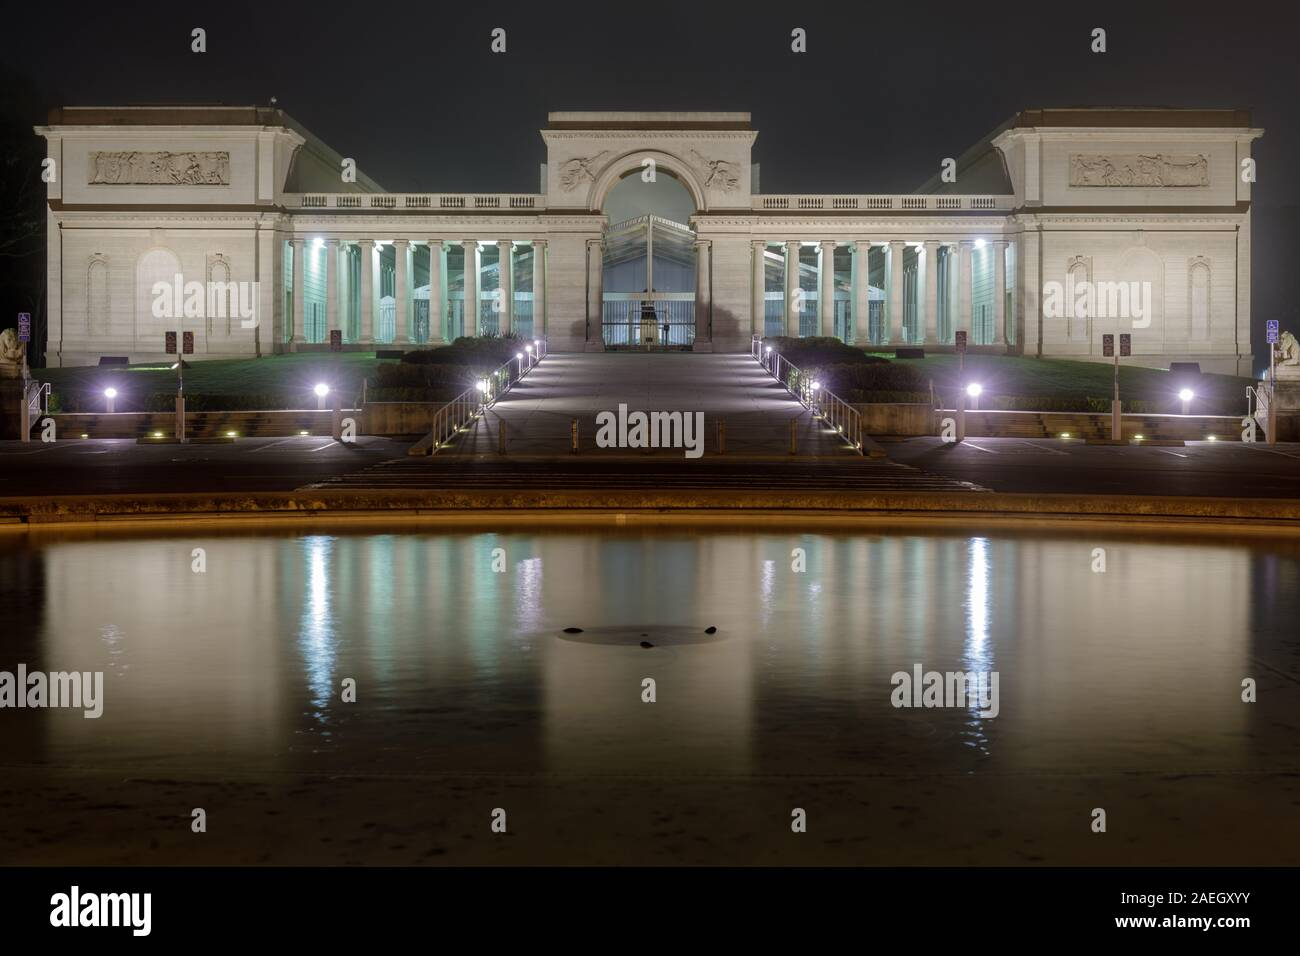 Façade, stairways and fountain of the Legion of Honor at night Stock Photo